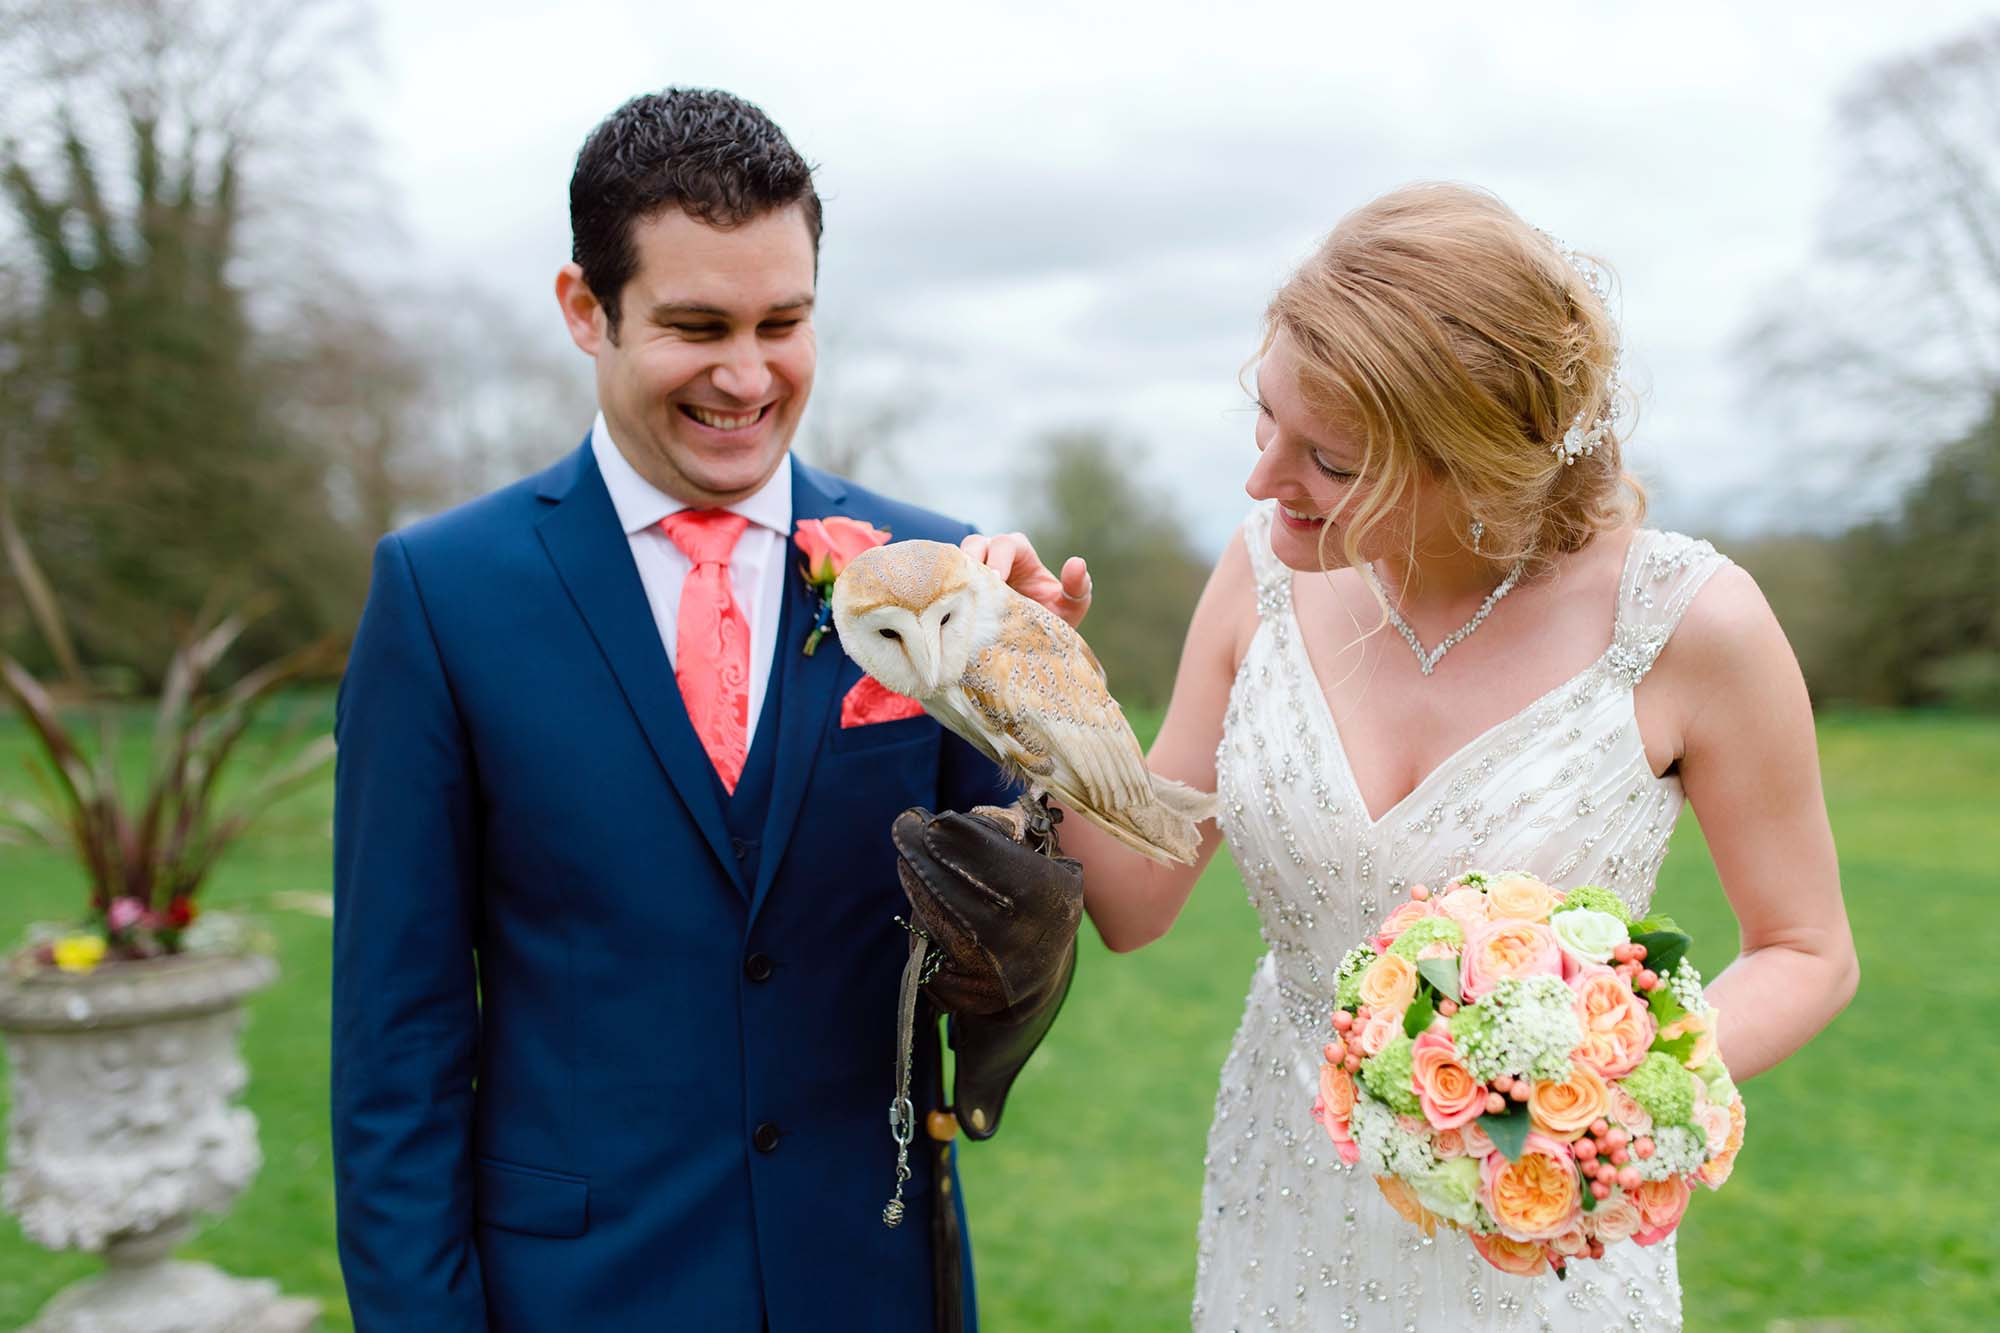 An elegant and fun spring wedding at Lainston House - Sarah Williams Photography House, Hampshire, Sarah Williams Photography